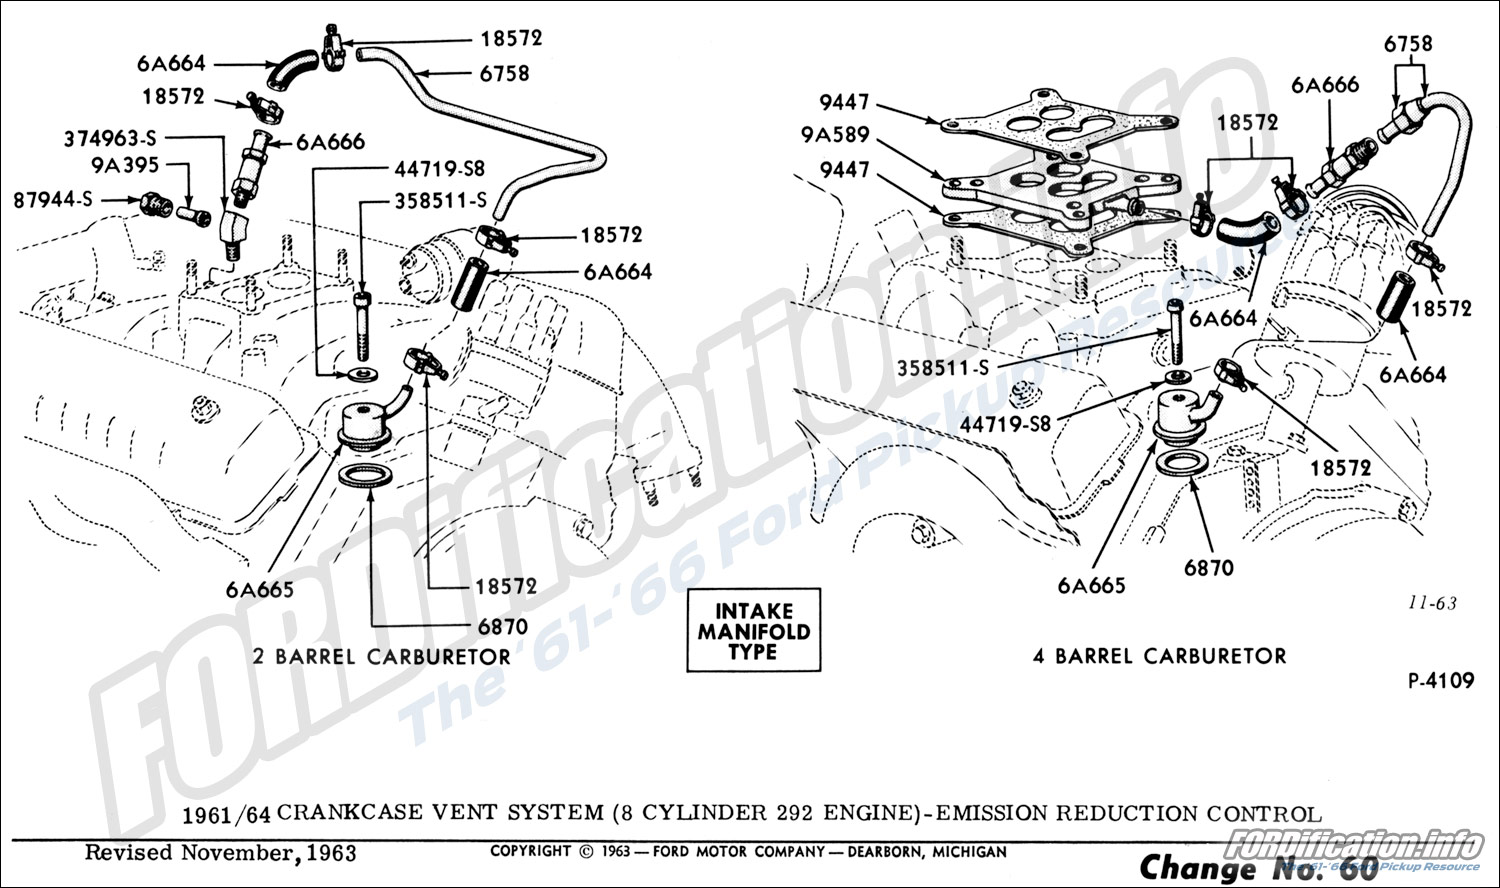 Ford Y Block Diagram Auto Electrical Wiring Flathead V8 Engine 292